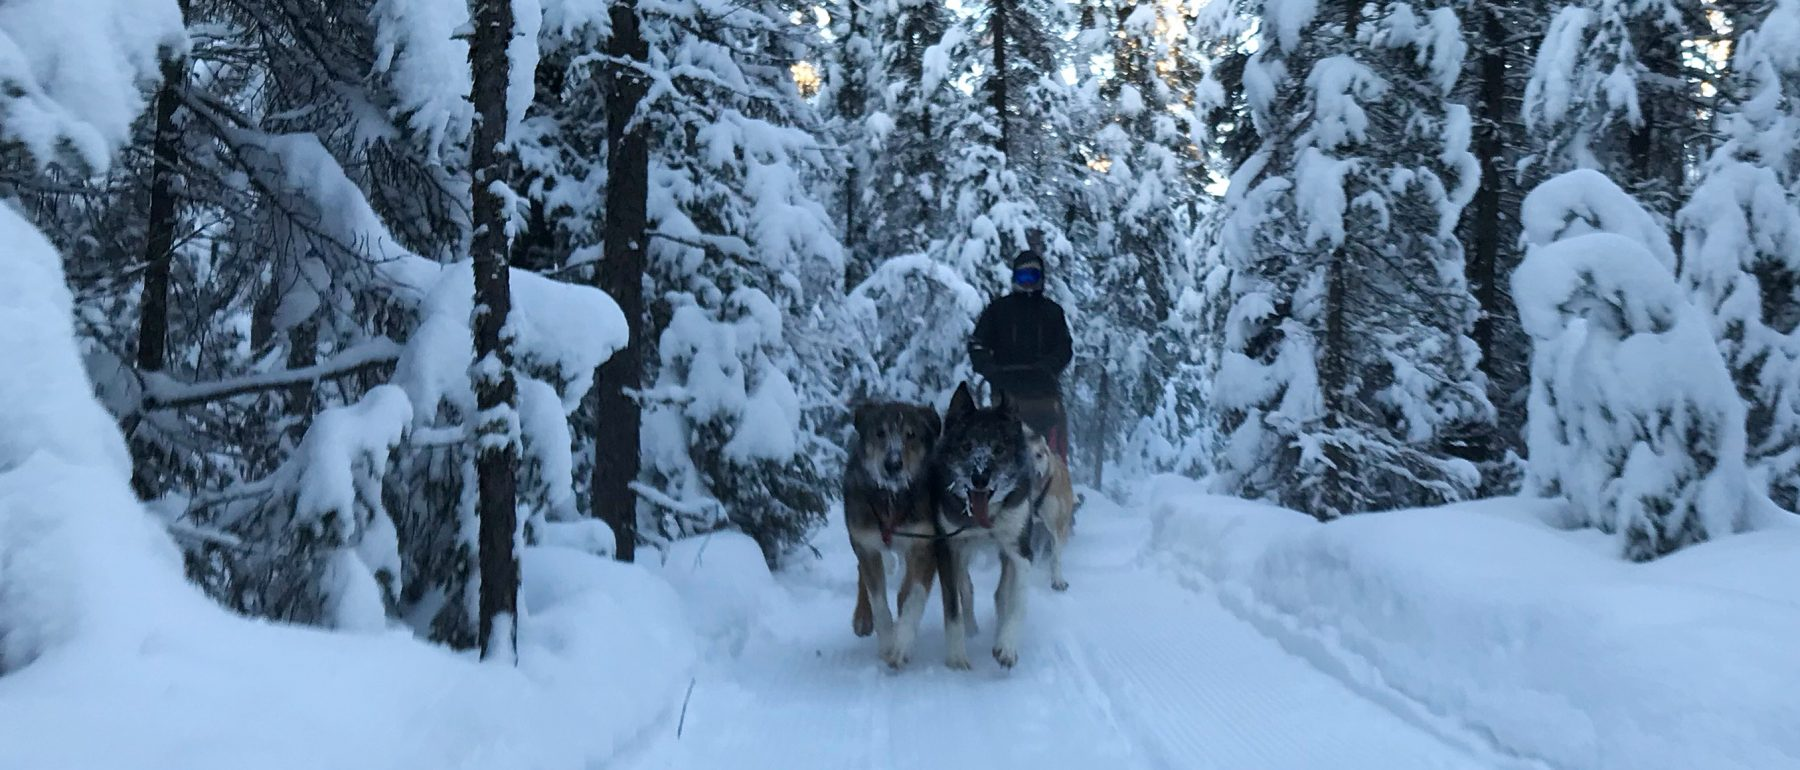 Dog sledding through the forest near Grand Ely Lodge